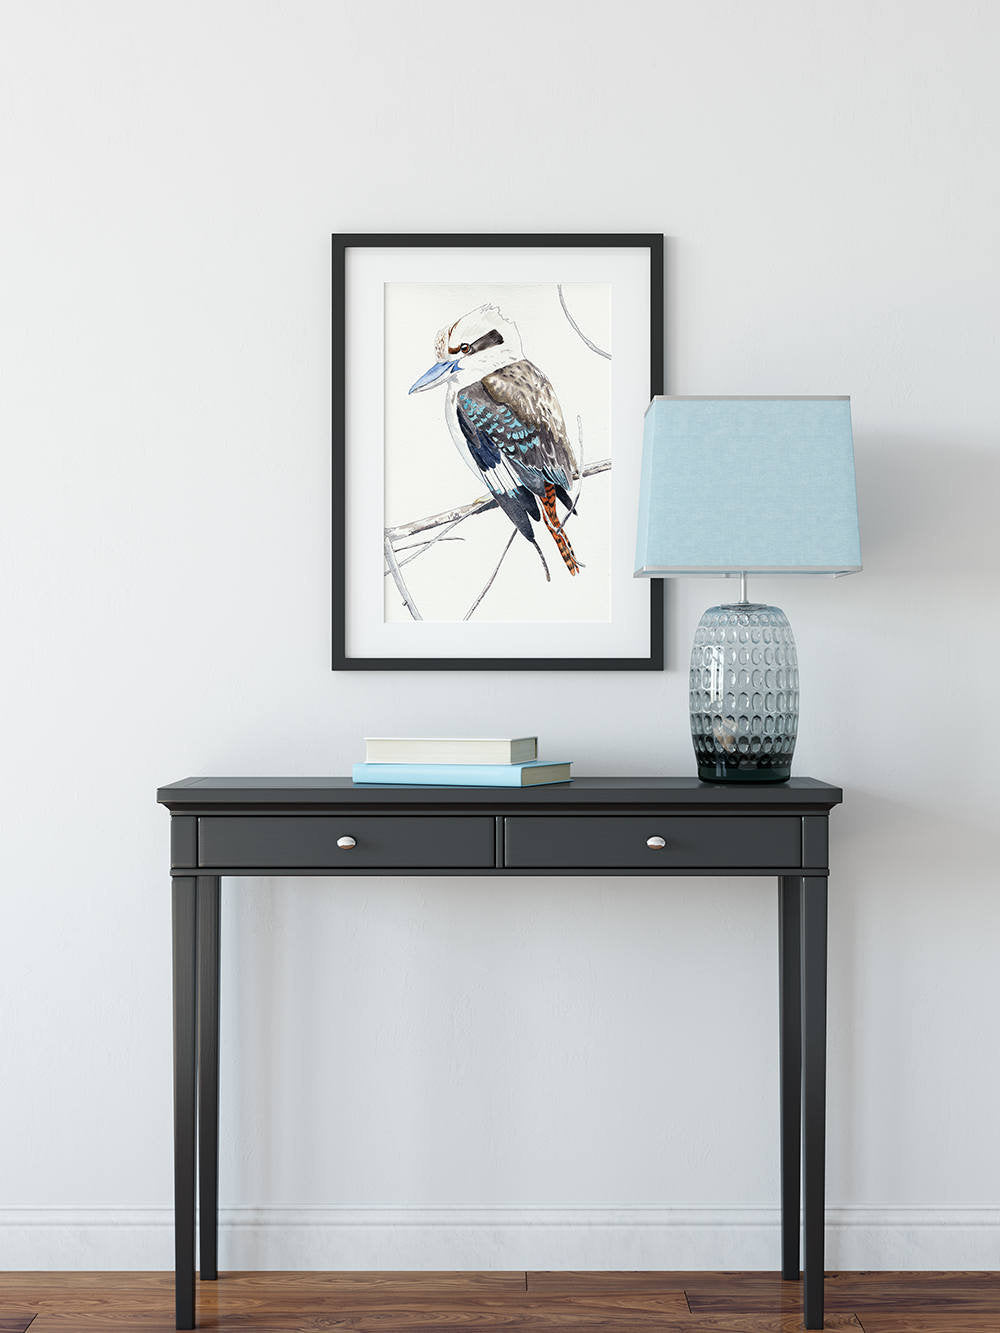 Kookaburra portrait, kookaburra art print, Australian gift, native bird painting, Australian souvenir, nature art print, nature wall decor